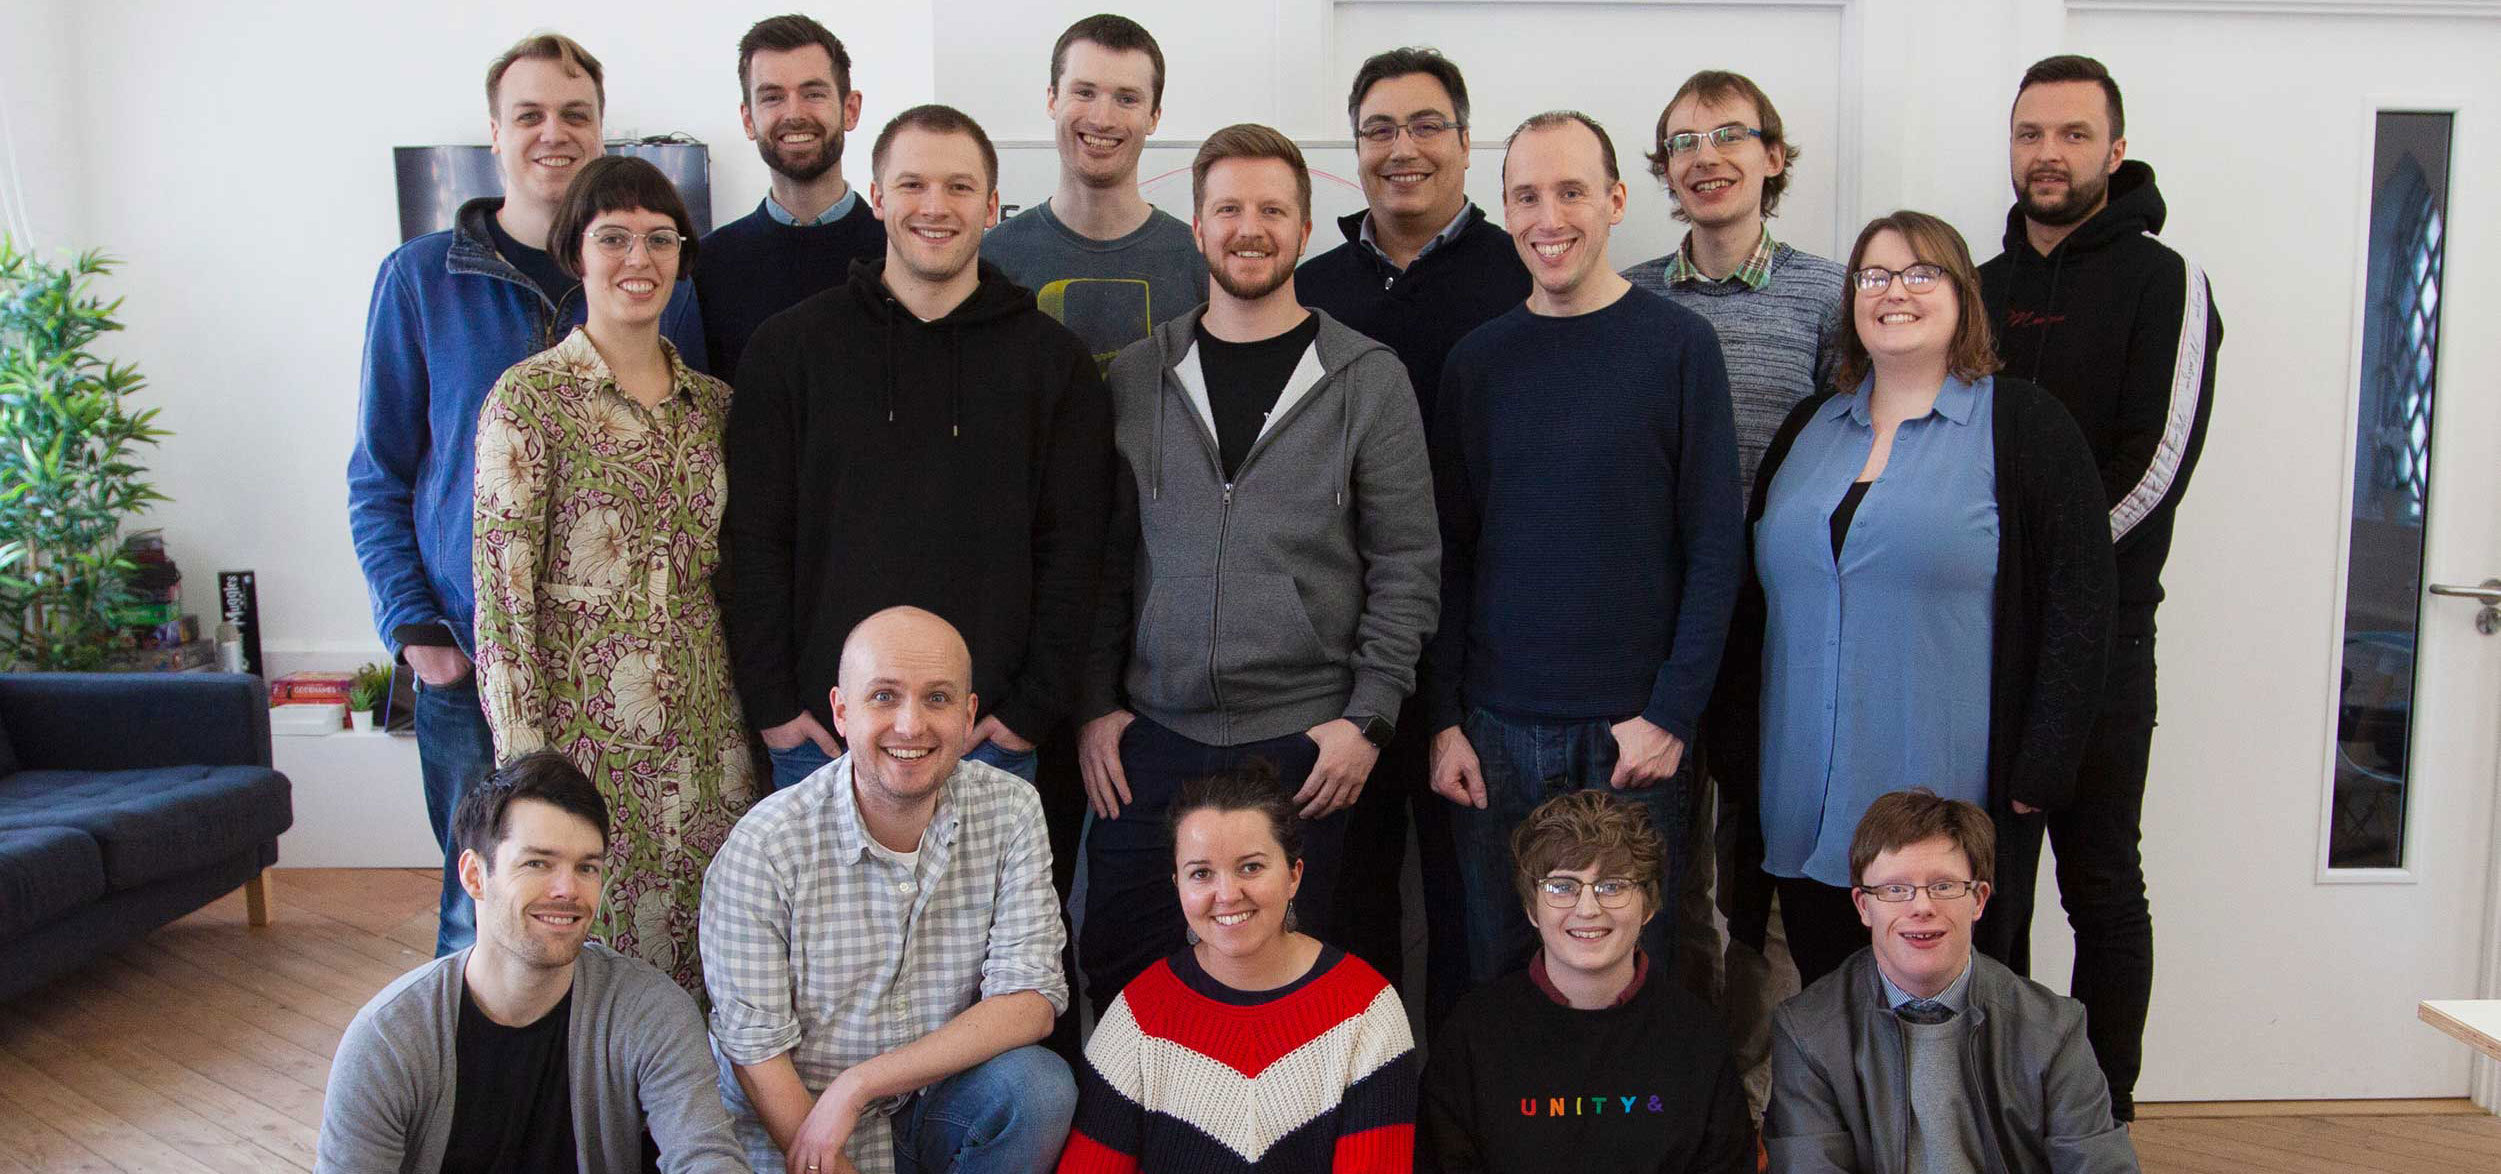 A photo of the 16 members Developer Society team in their studio